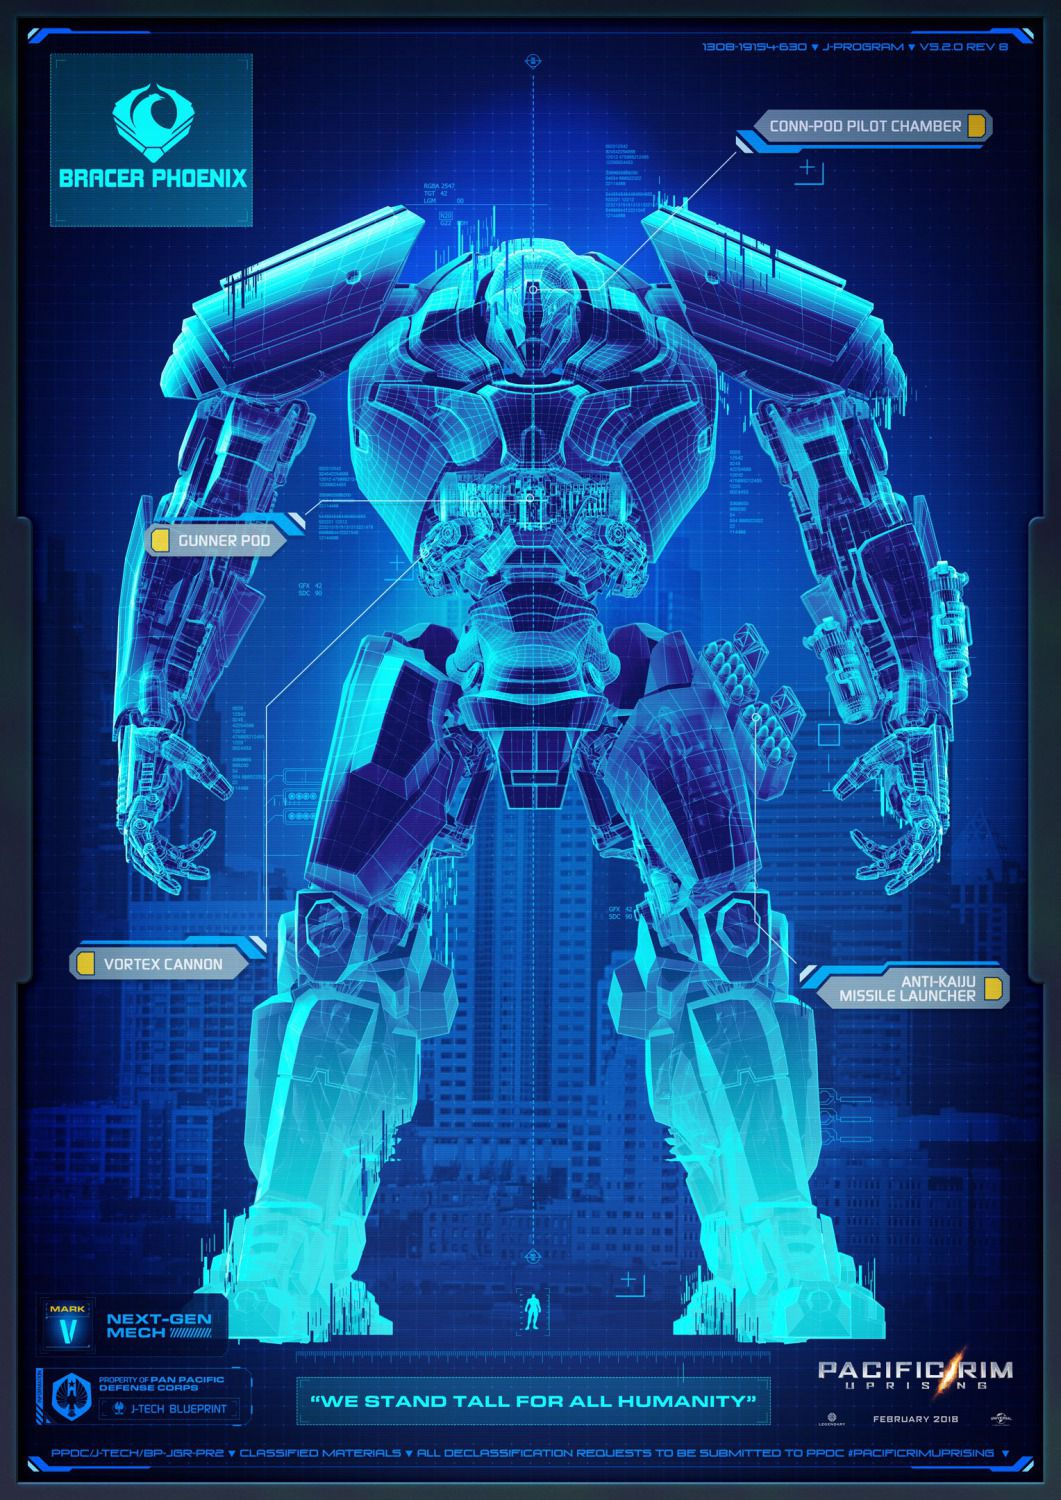 Pacific Rim Uprising - Bracer Phoenix - Next Generation Mech Mark IV - Pan Pacific Defense Corps